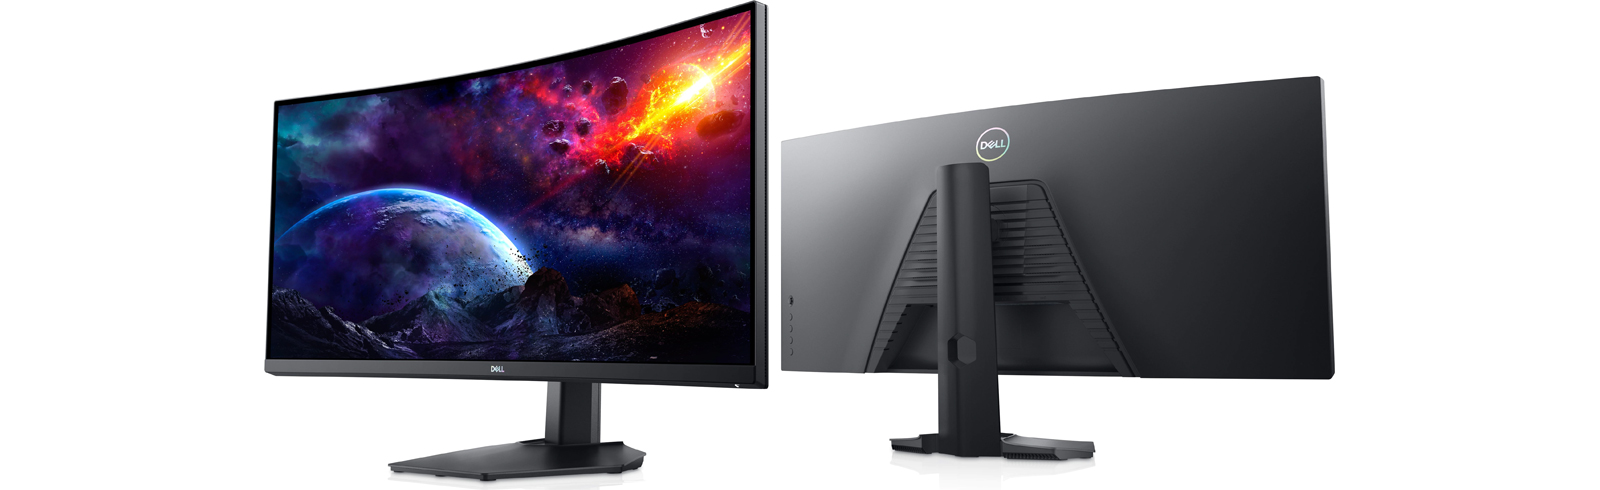 The Dell S3422DWG goes on sale in North America and Europe